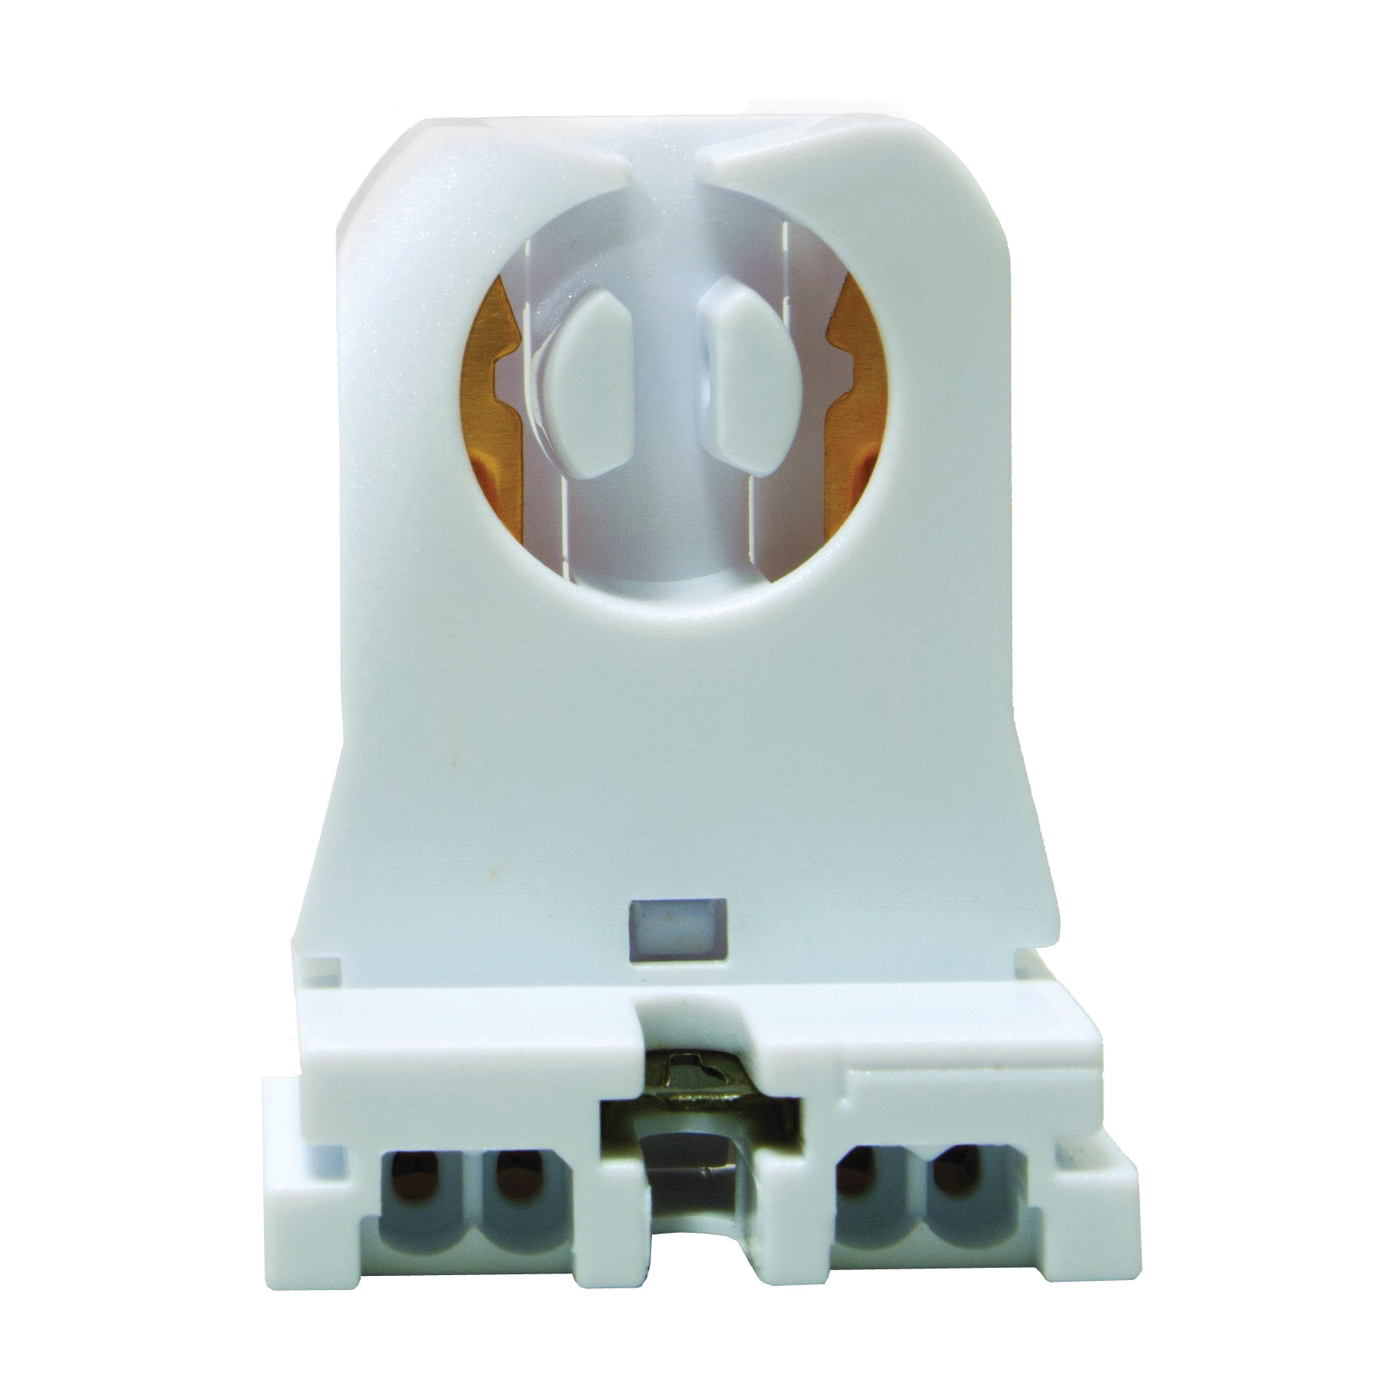 Picture of Eaton Wiring Devices 2510W-BOX Lamp Holder, 600 VAC, 660 W, White